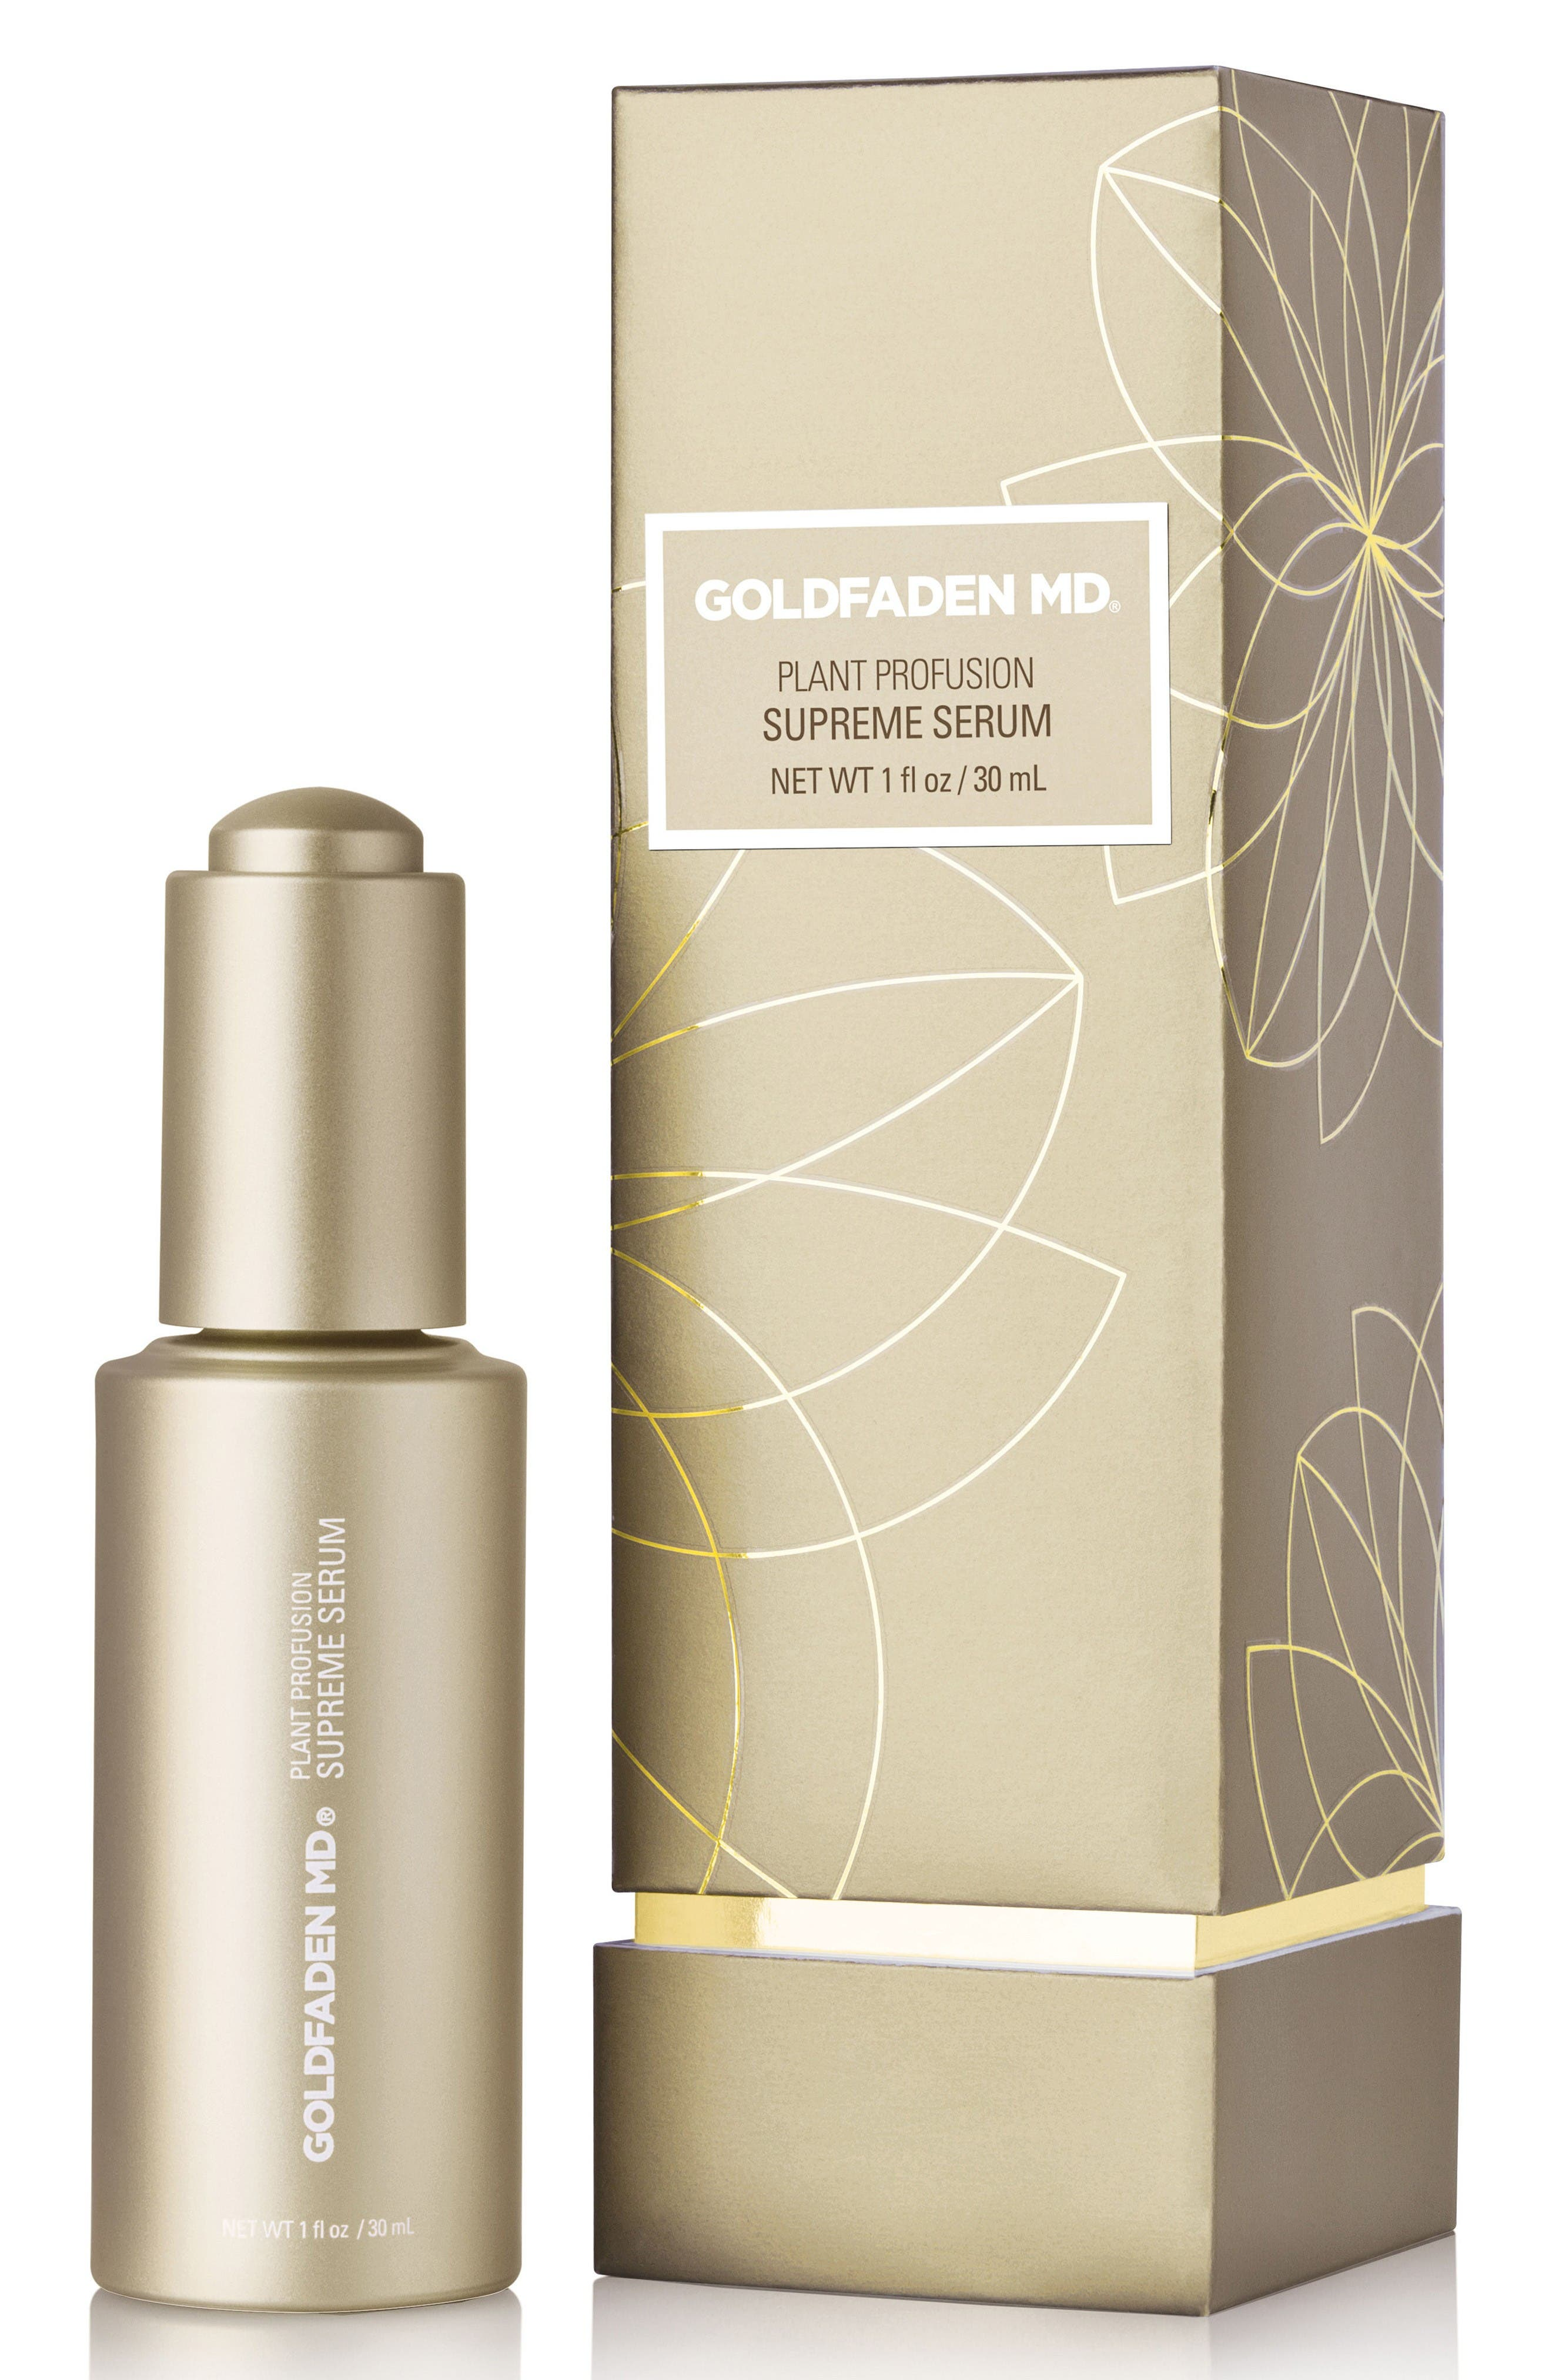 SPACE.NK.apothecary Goldfaden MD Plant Profusion Supreme Serum